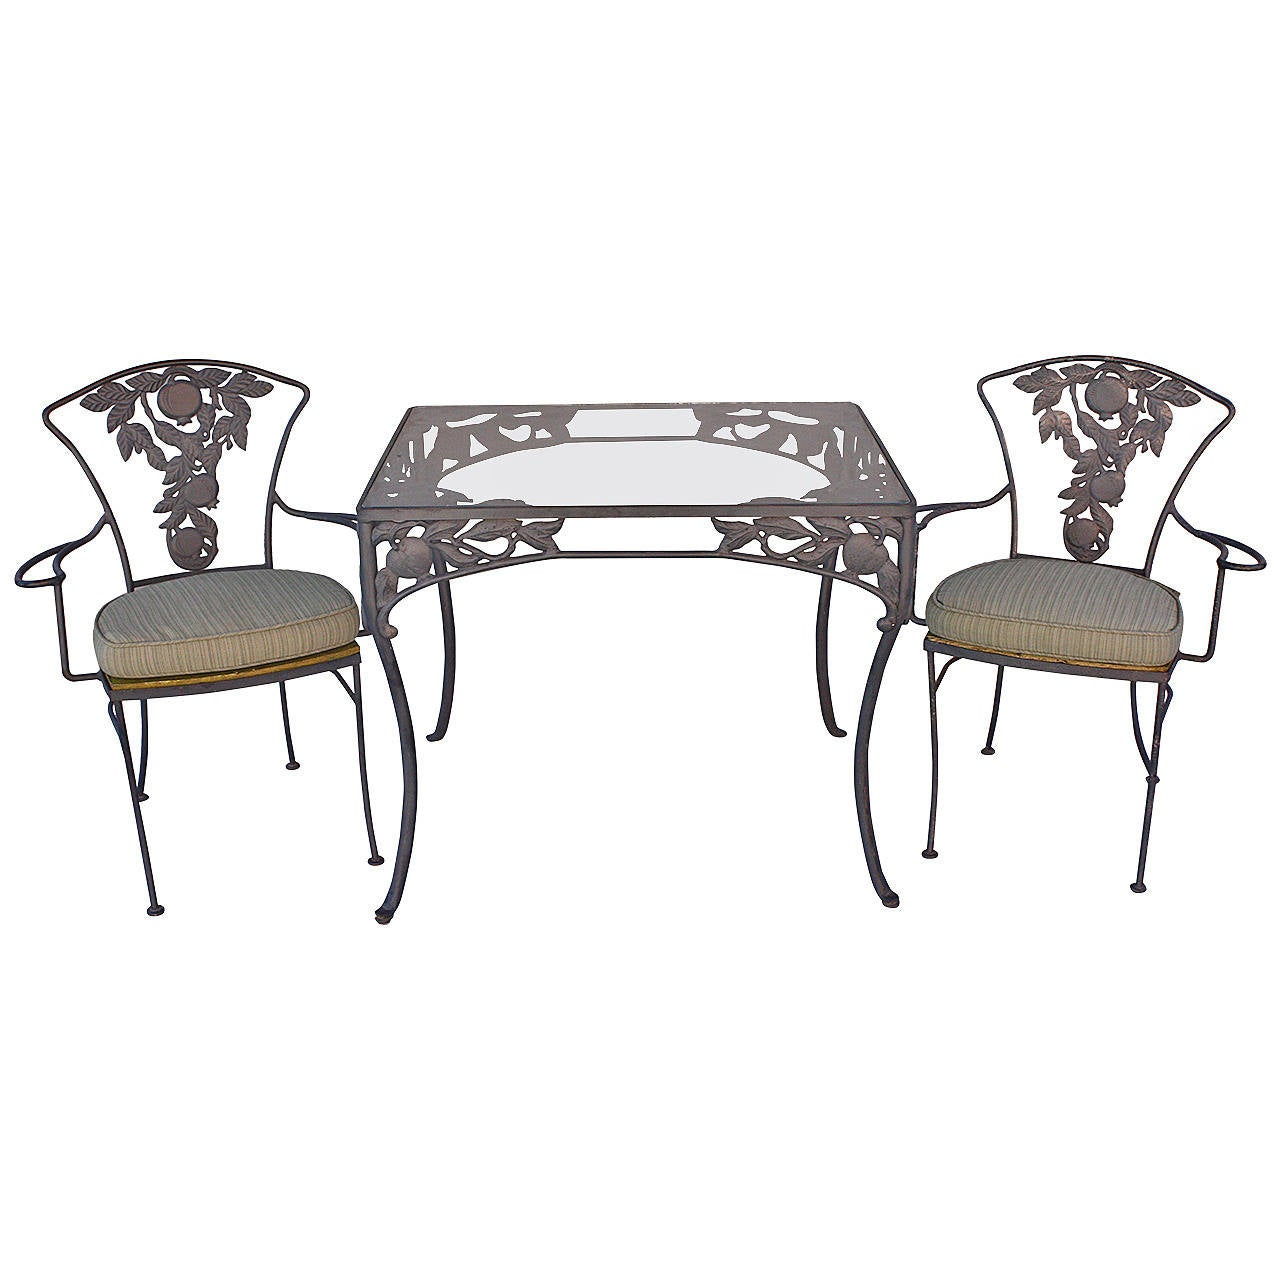 1940s pomegranate patio set table and two chairs at 1stdibs